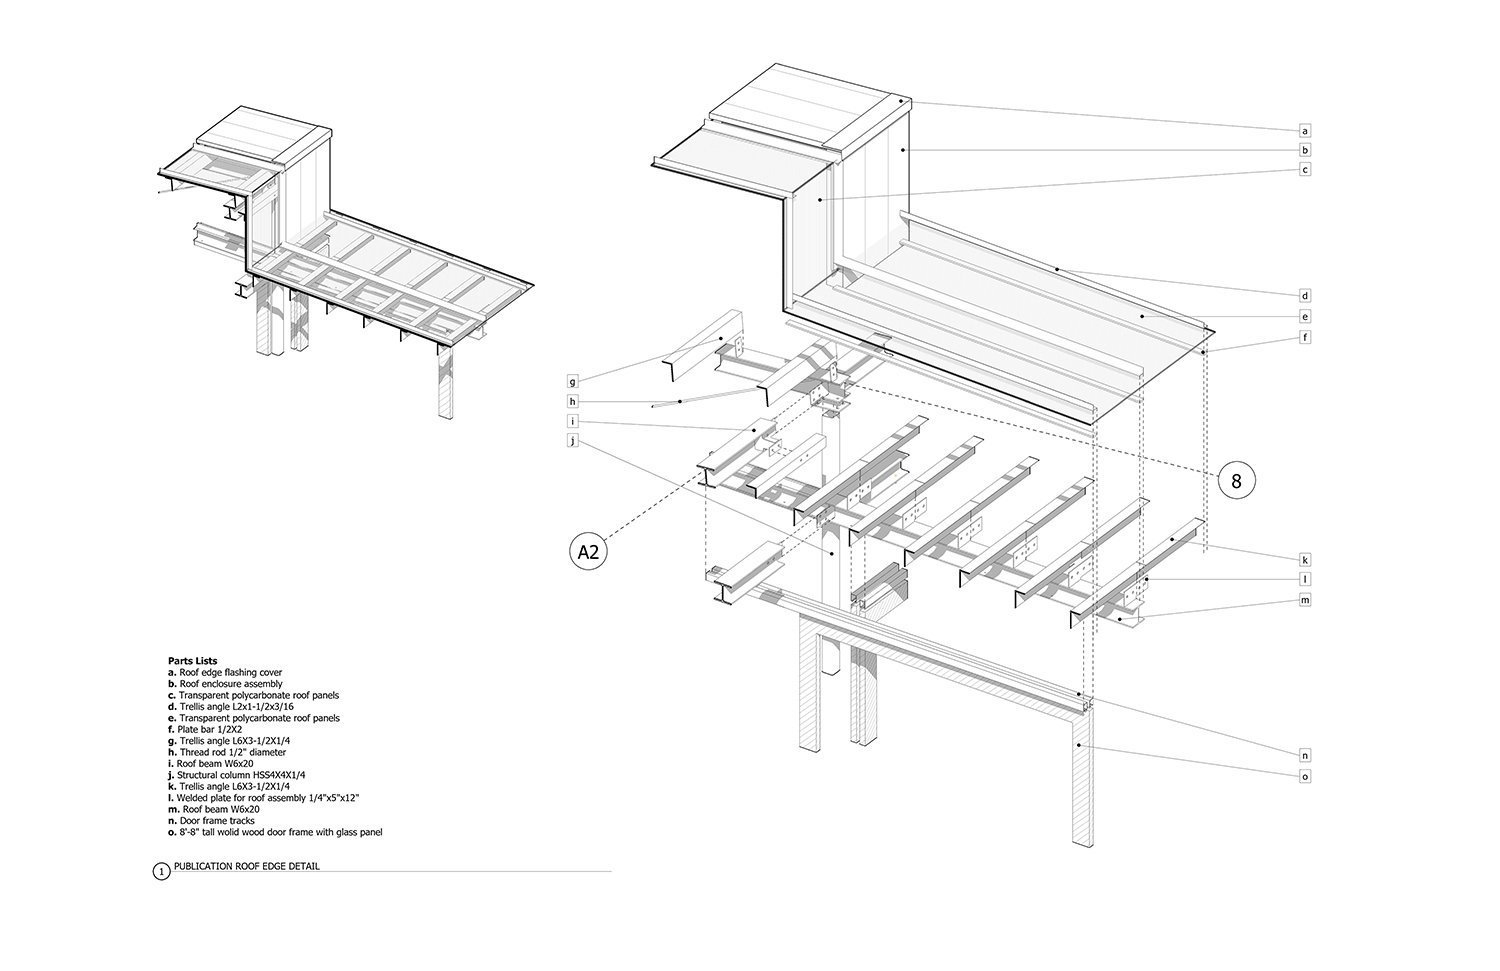 Exploded and assembled views of typical roof system module, with list of components. Anderson Anderson Architecture}